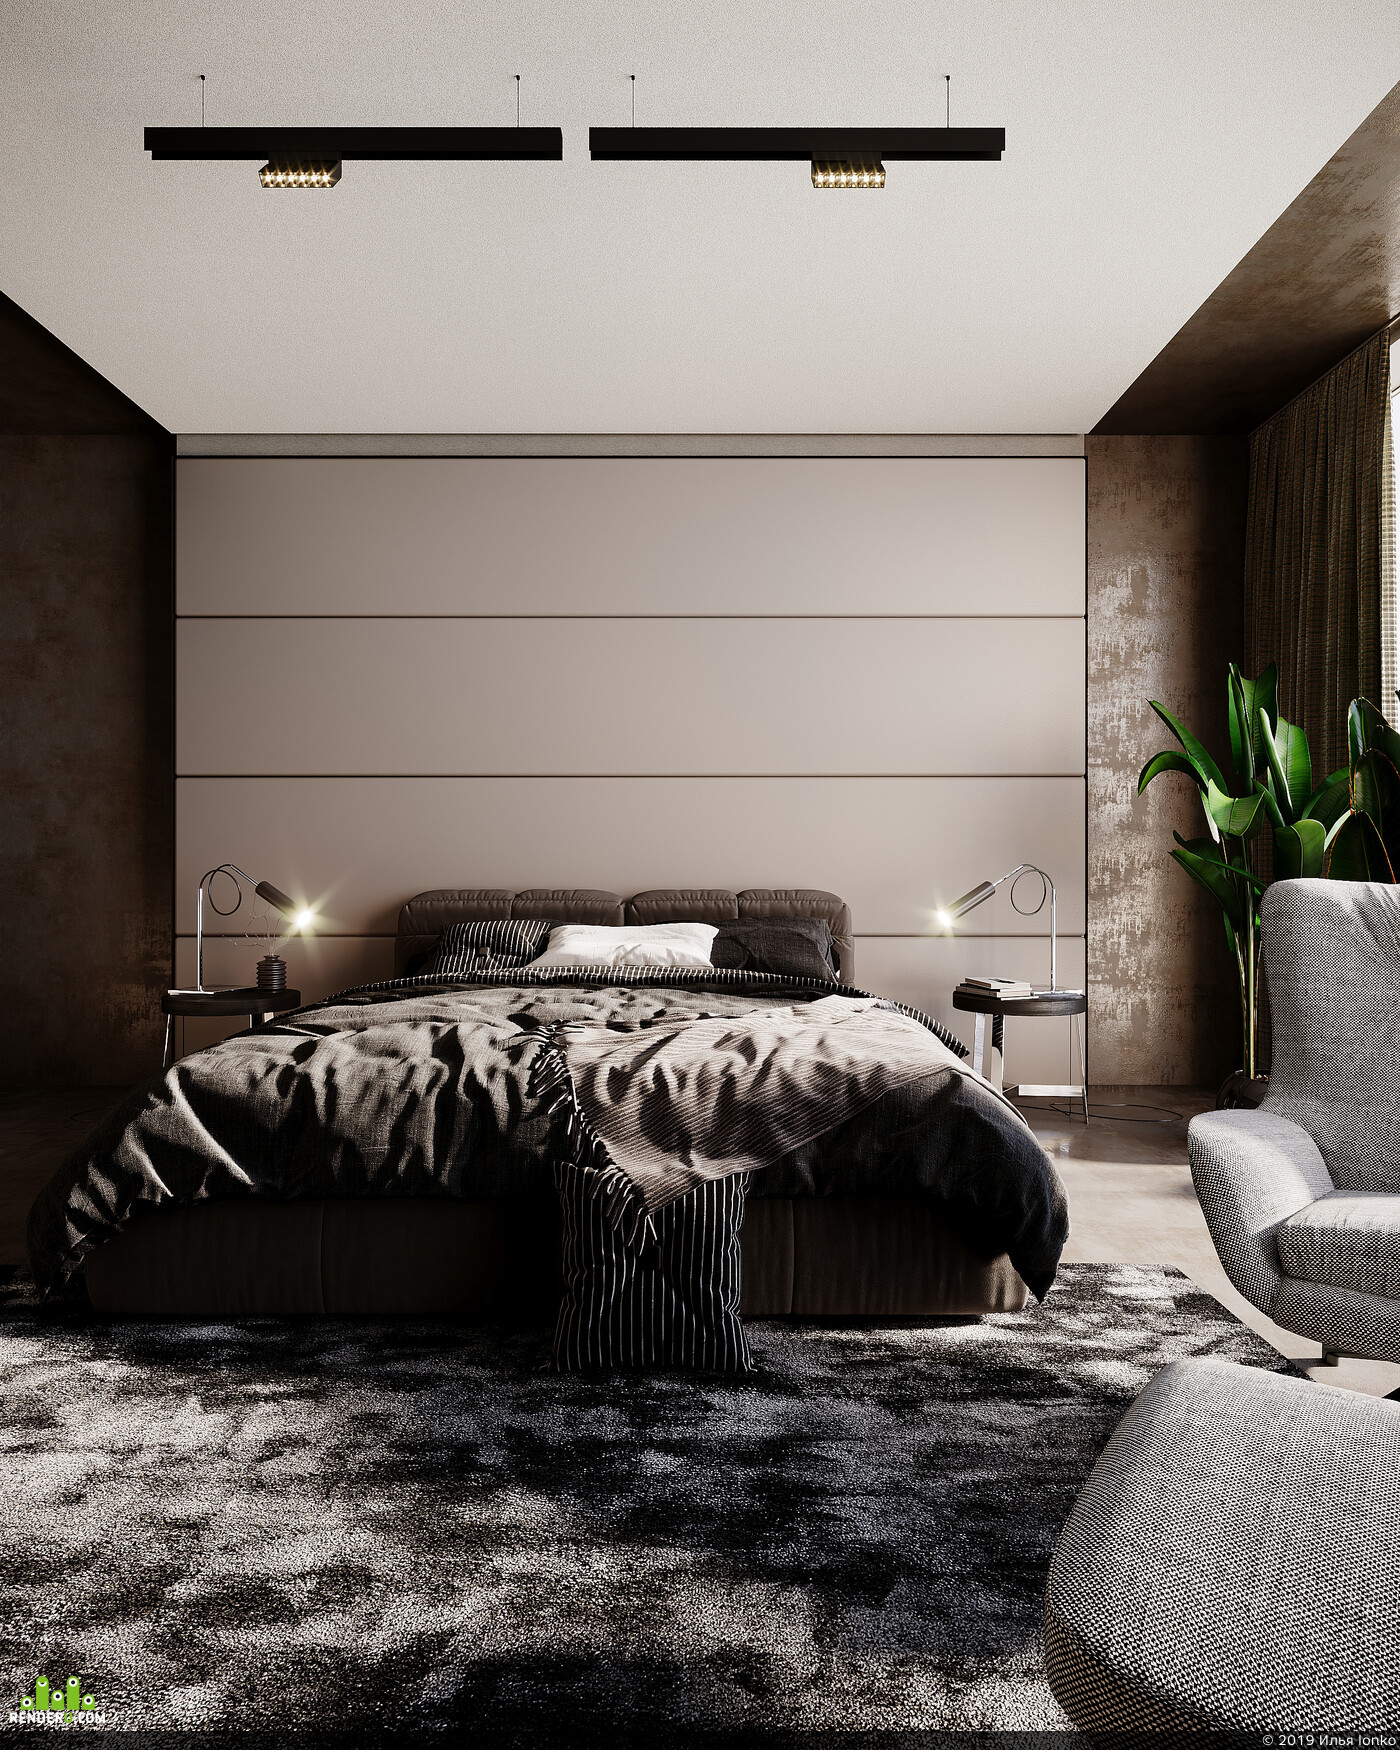 3D Studio Max, Architectural 3D Visualization, archviz, VIZUALISATION, 3dviz, viz